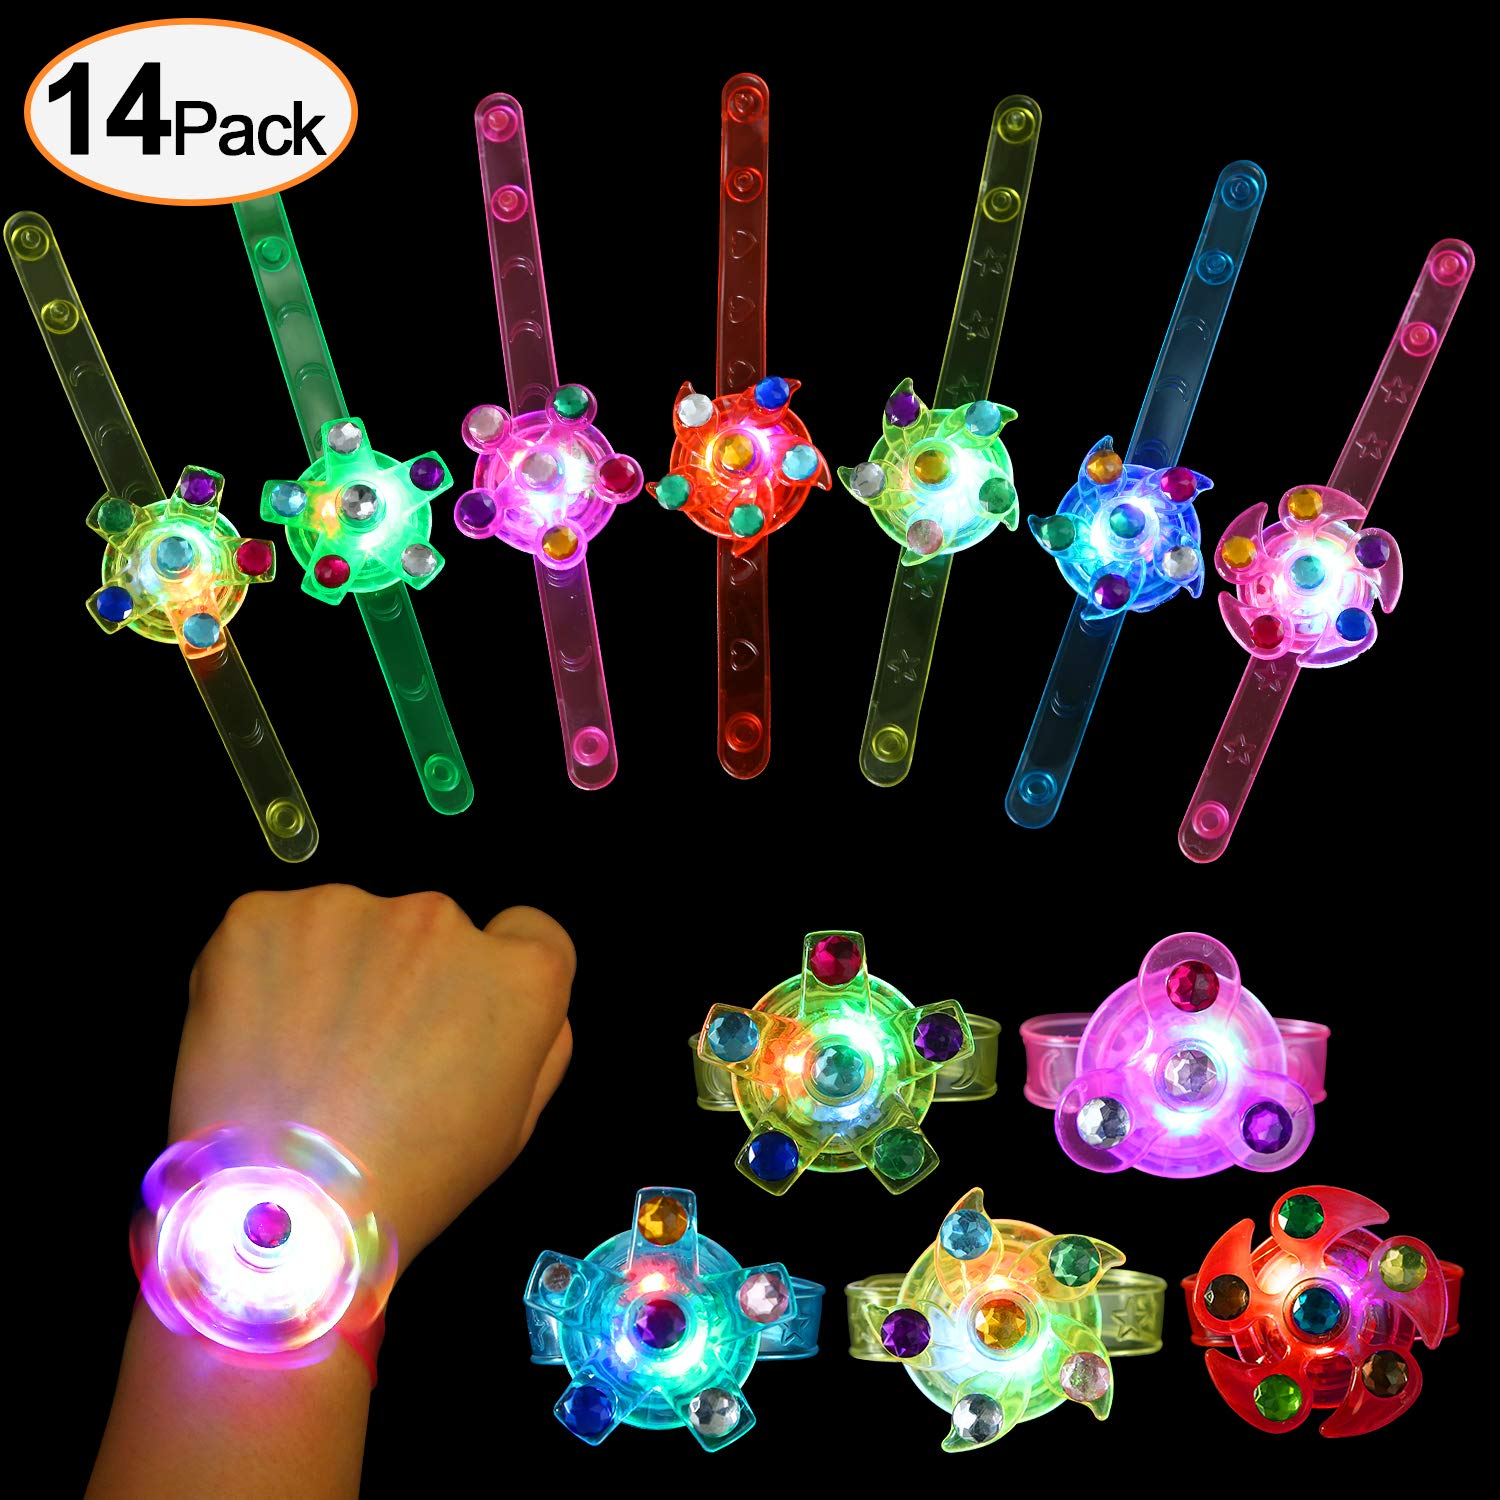 wellvo Party Favors for Kids 14 Pack Light Up Bracelets Glow in The Dark Party Supplies Girls Boys Kid Birthday Goodie Bags Return Gifts Halloween Christmas Party Favor LED Toys Bulk